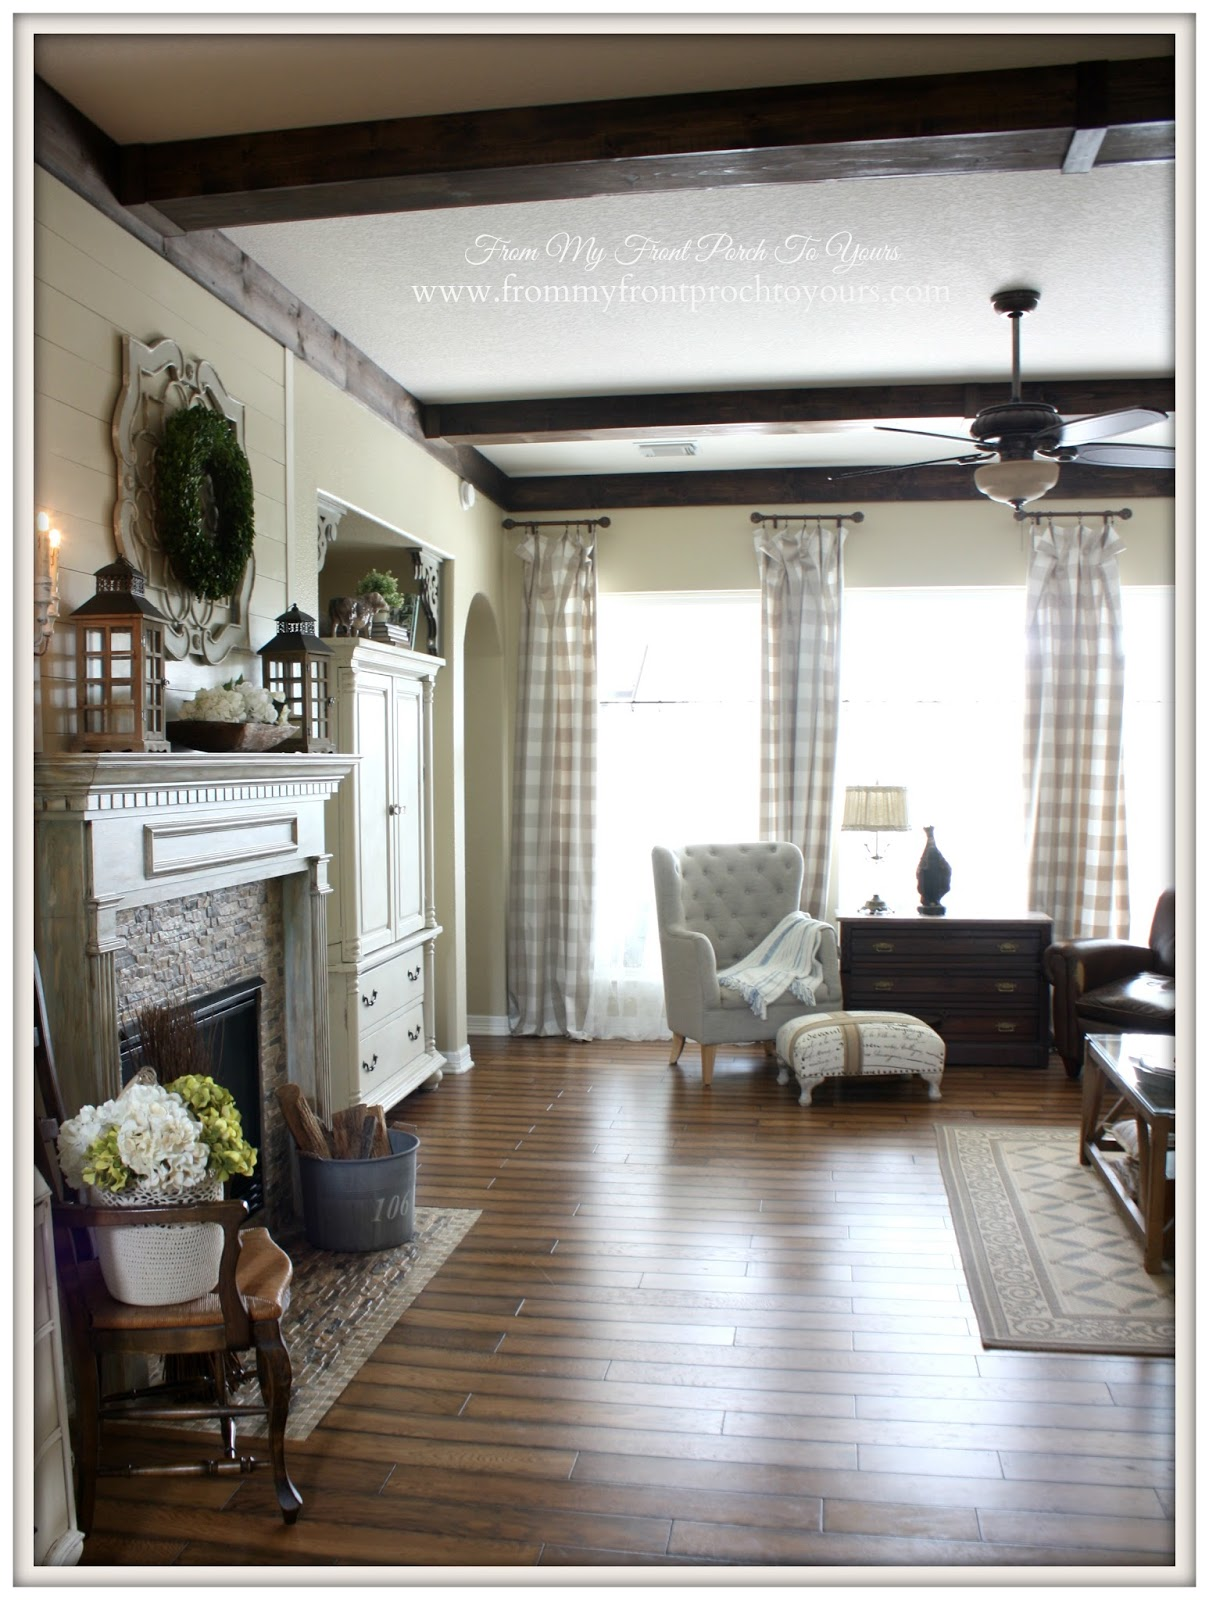 Diy Living Room Decorations Pinterest: From My Front Porch To Yours: DIY Living Room Wood Beams